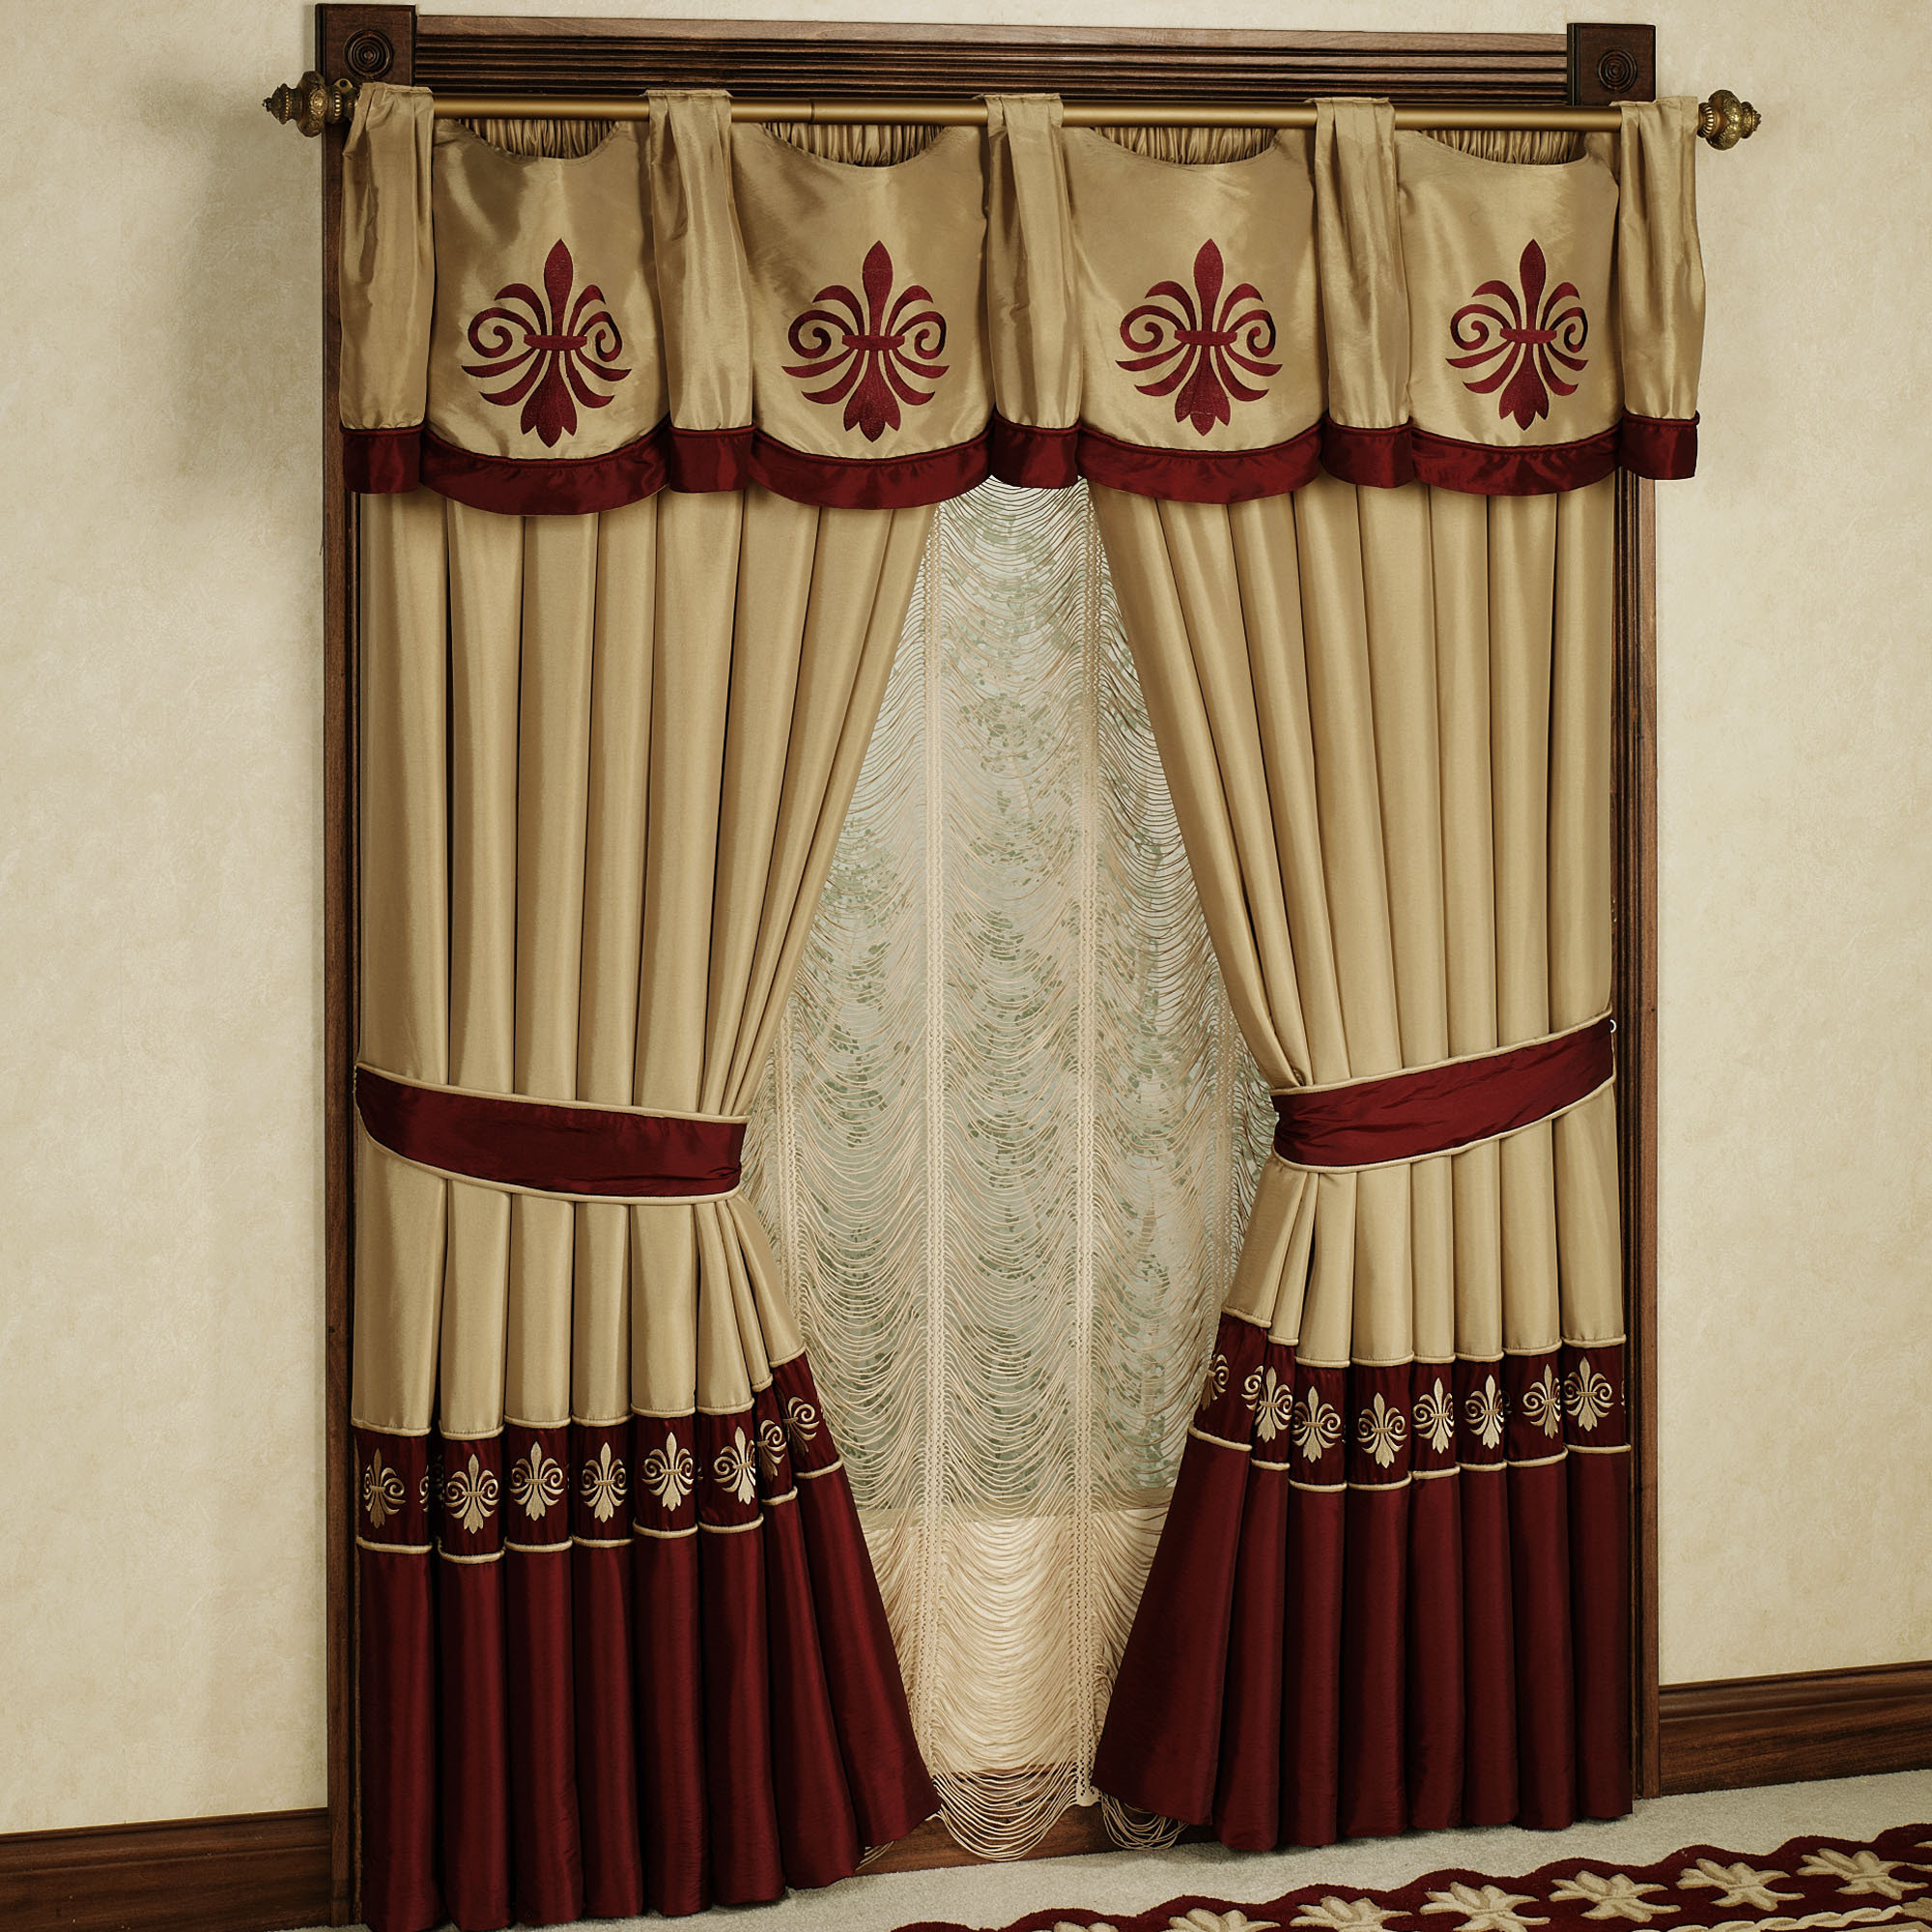 Modern Curtains Designs 2015 Carpet Palace Curtains Home